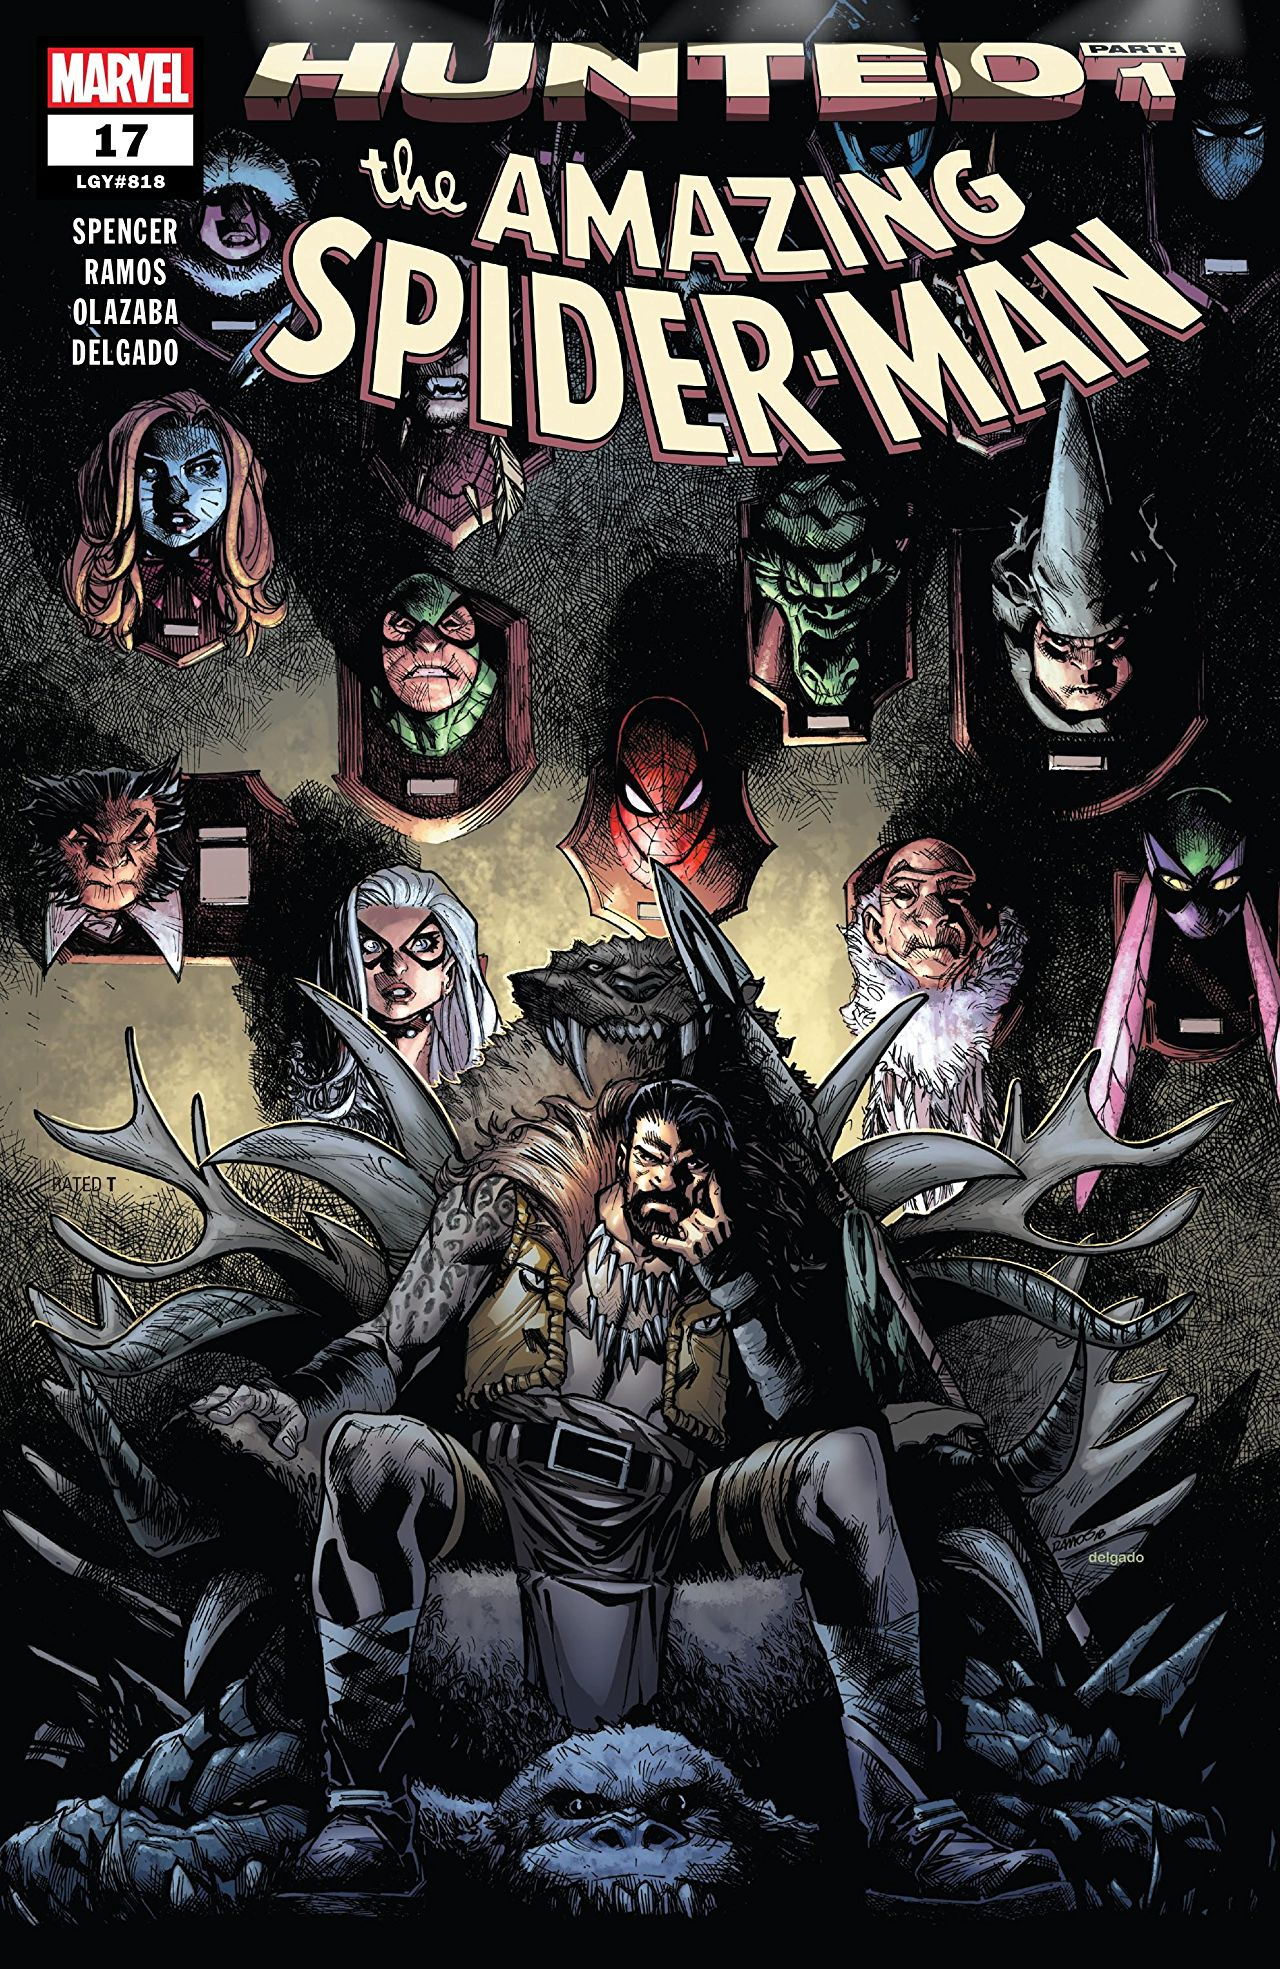 Image result for Amazing spiderman #17 Hunted cover